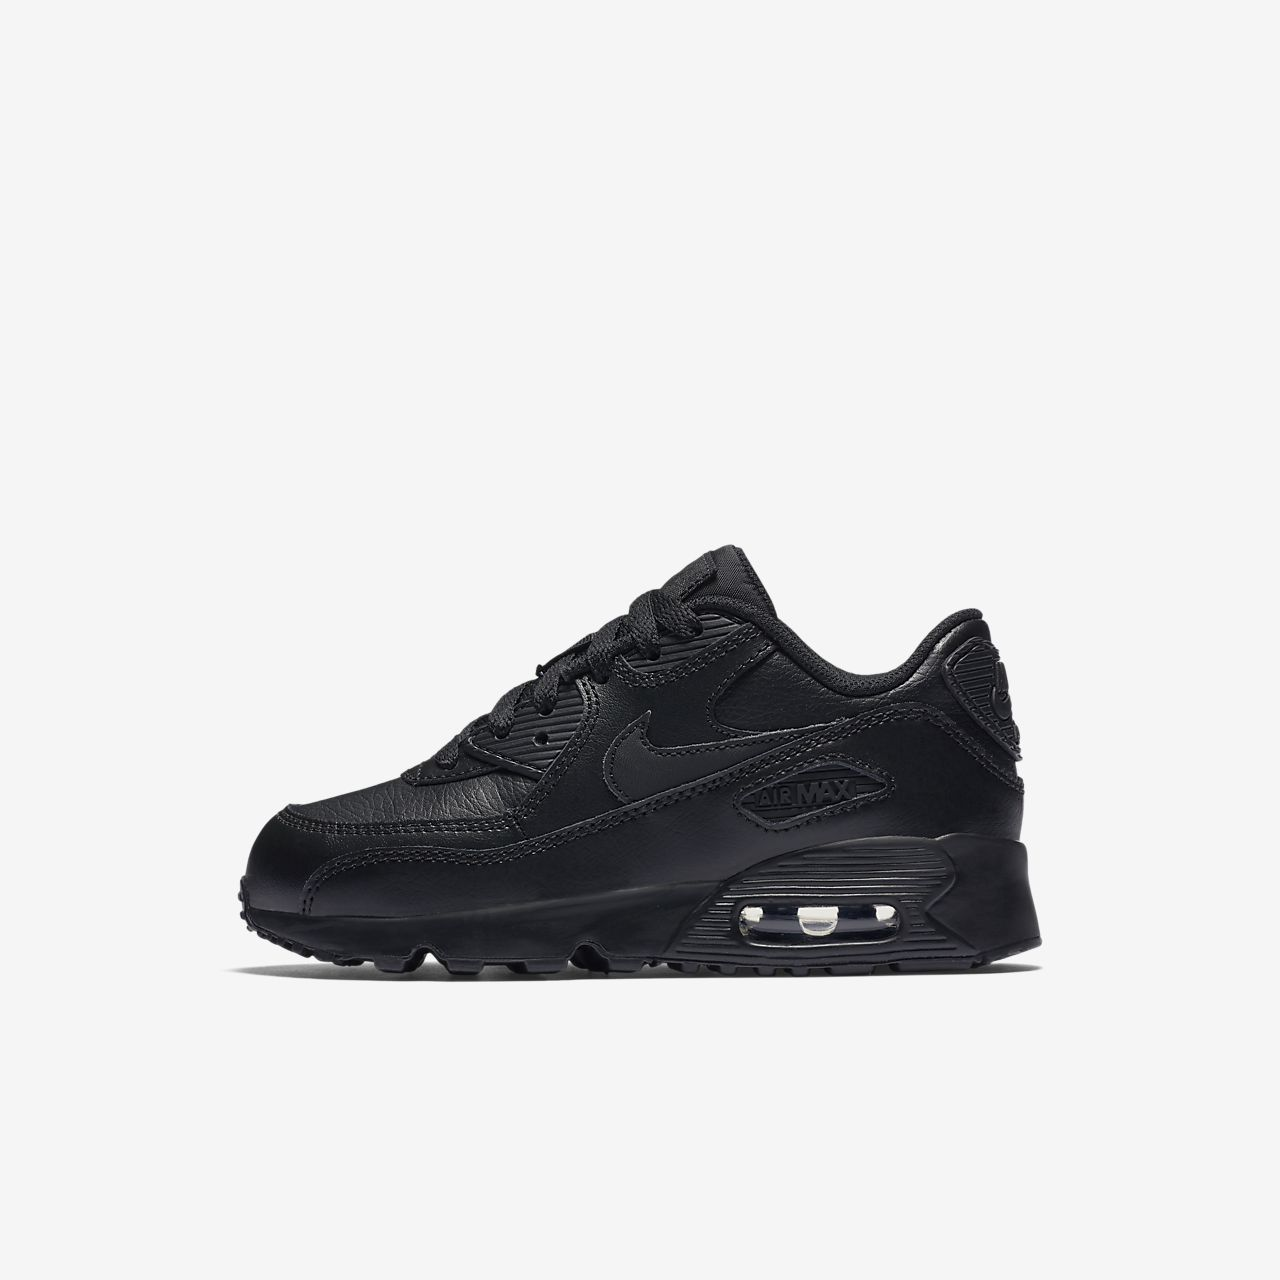 huge selection of 05ee7 c7fa8 ... Sko Nike Air Max 90 Leather för barn